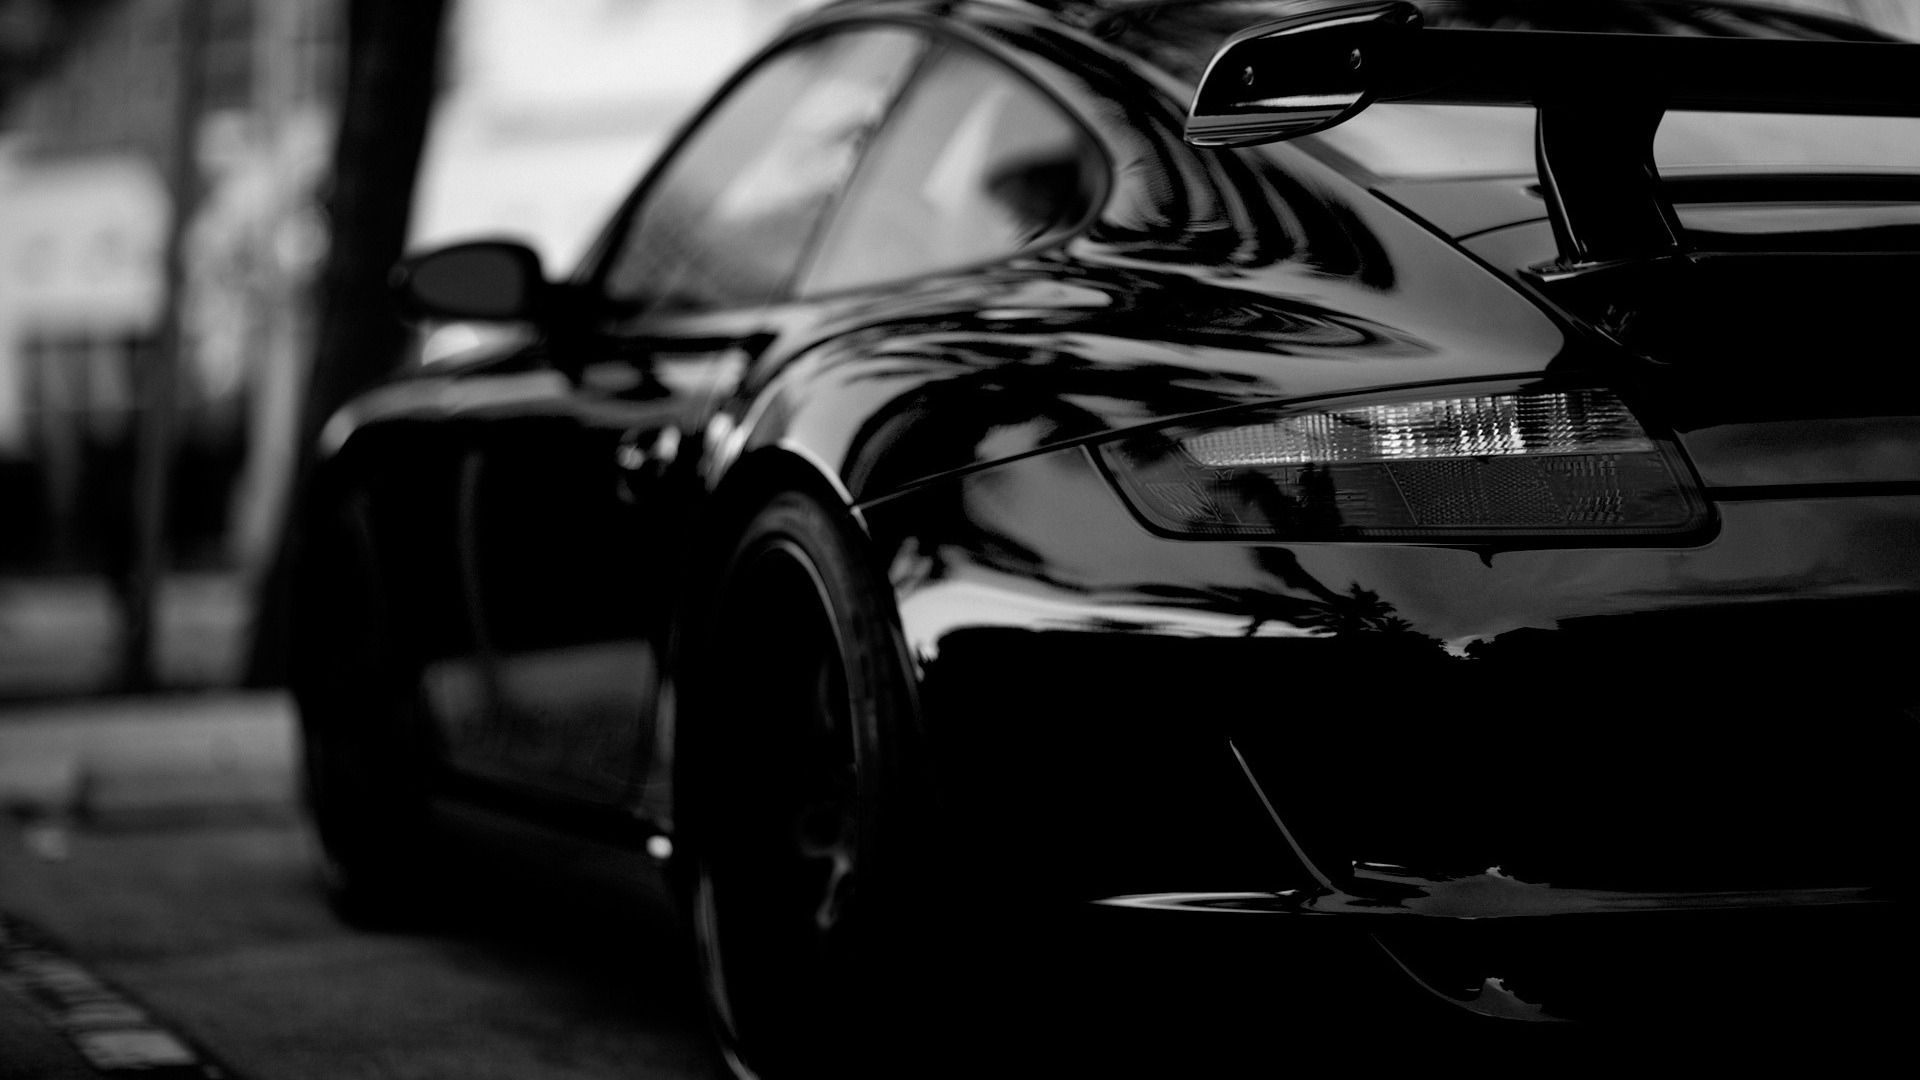 Porsche Car In Black White Hd Wallpaper Jpg 1920 1080 With